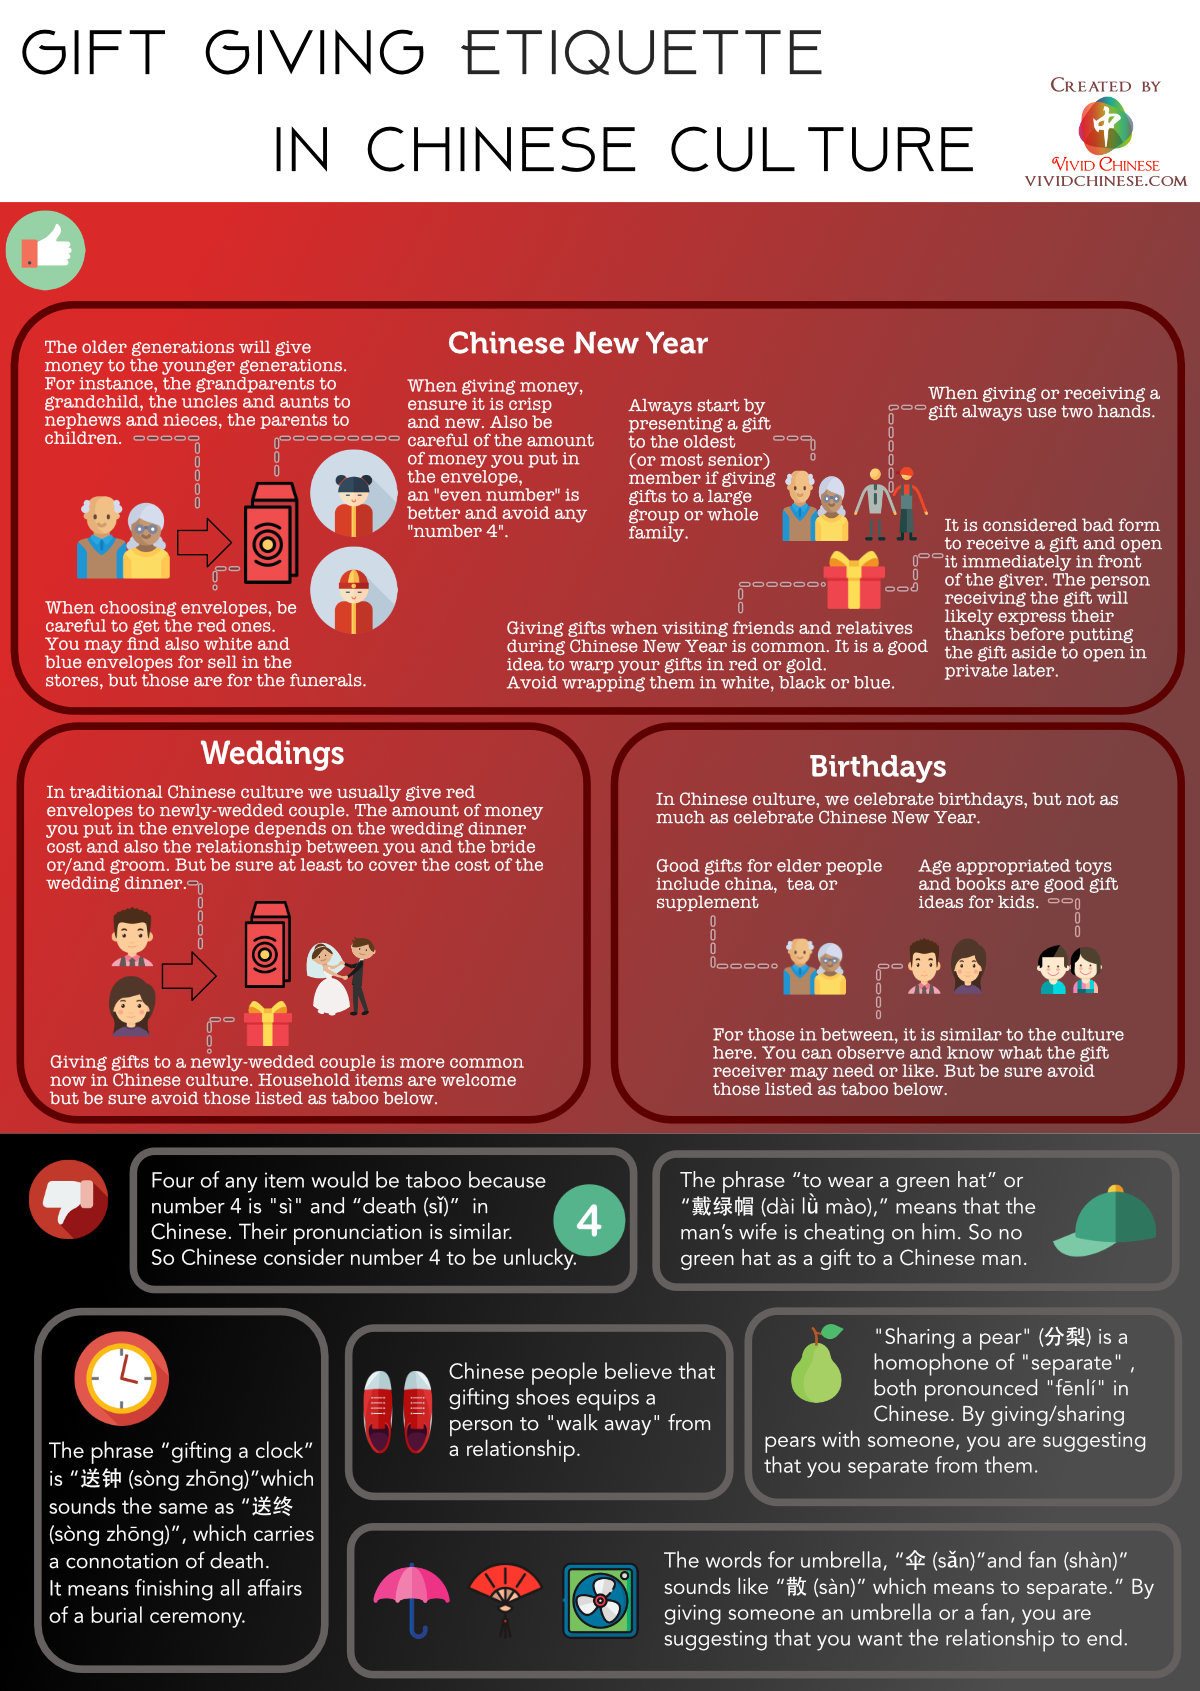 Gift Giving Etiquette In Chinese Culture simplified infographic